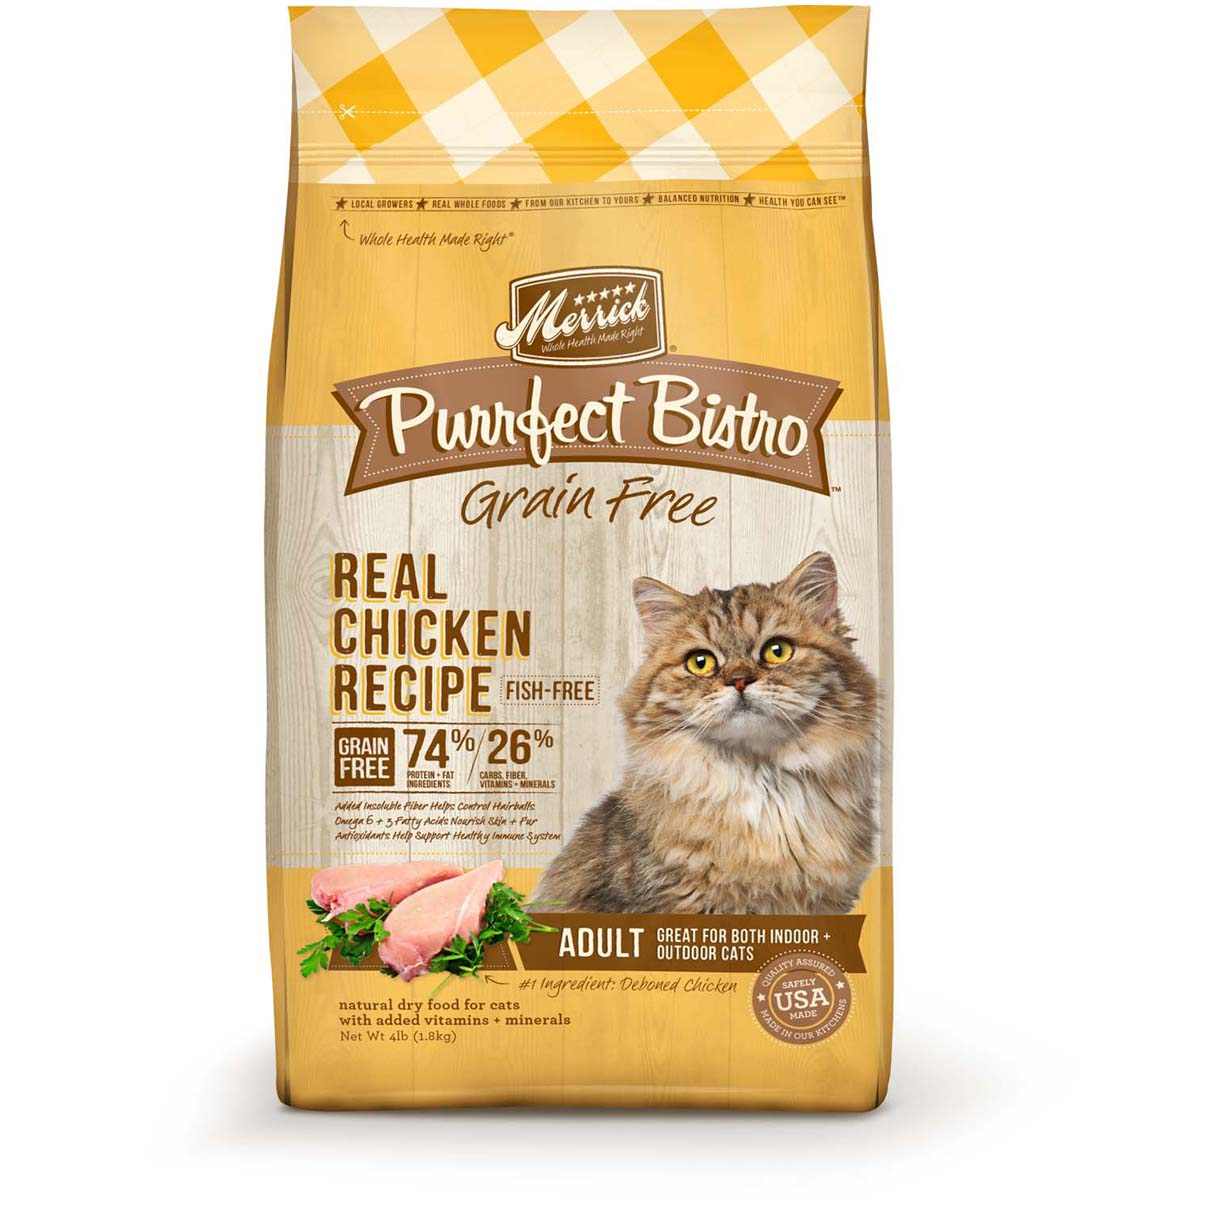 Merrick Purrfect Bistro Grain-Free Real Chicken Recipe Adult Dry Cat Food 4lbs